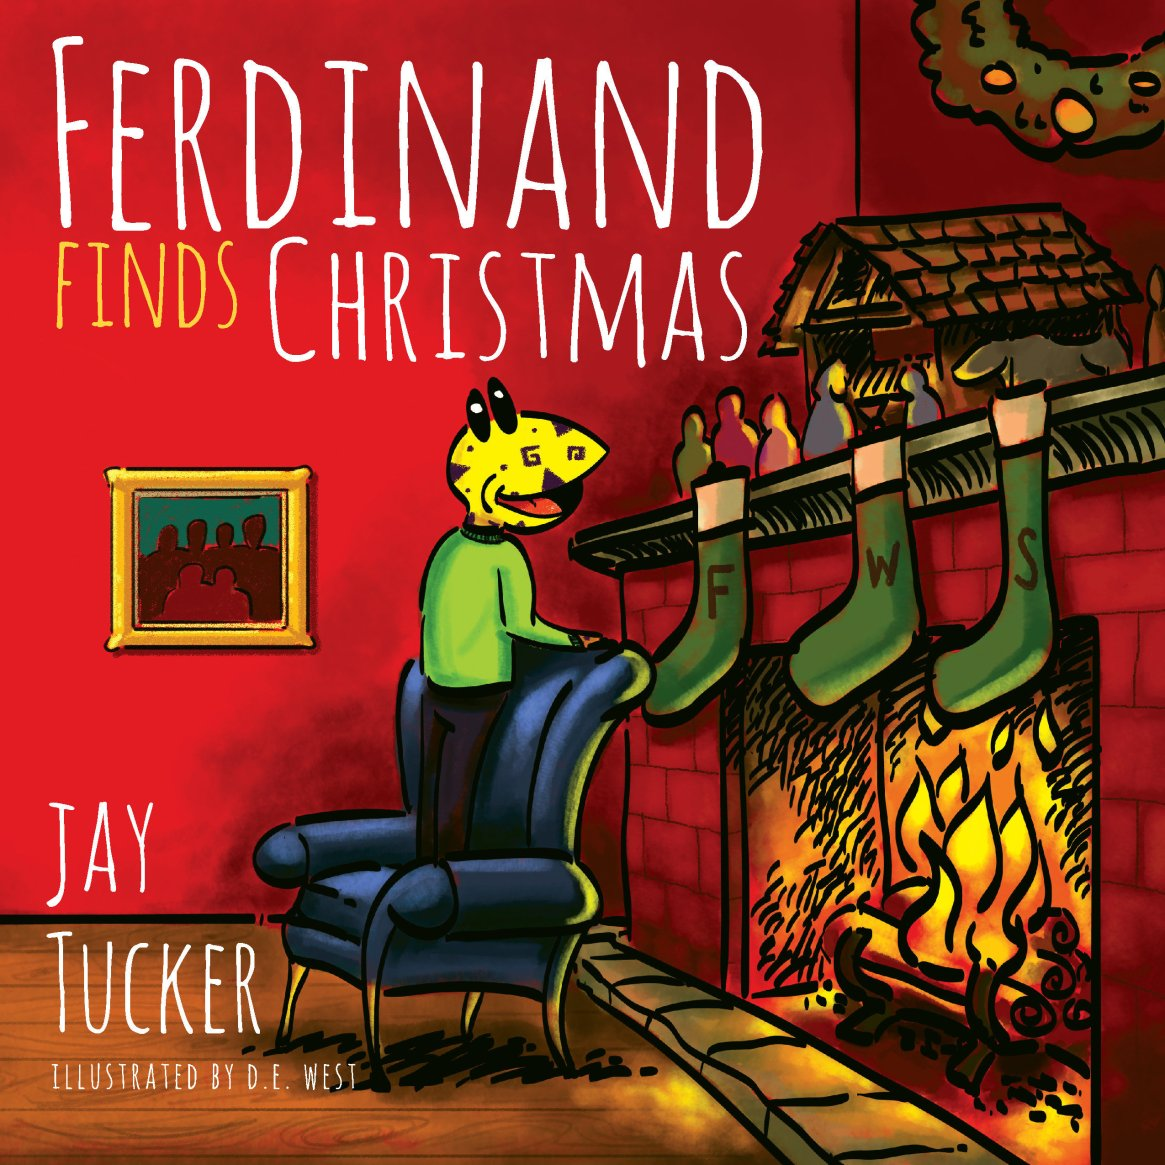 Ferdinand Finds Christmas 978-1-61599-253-9